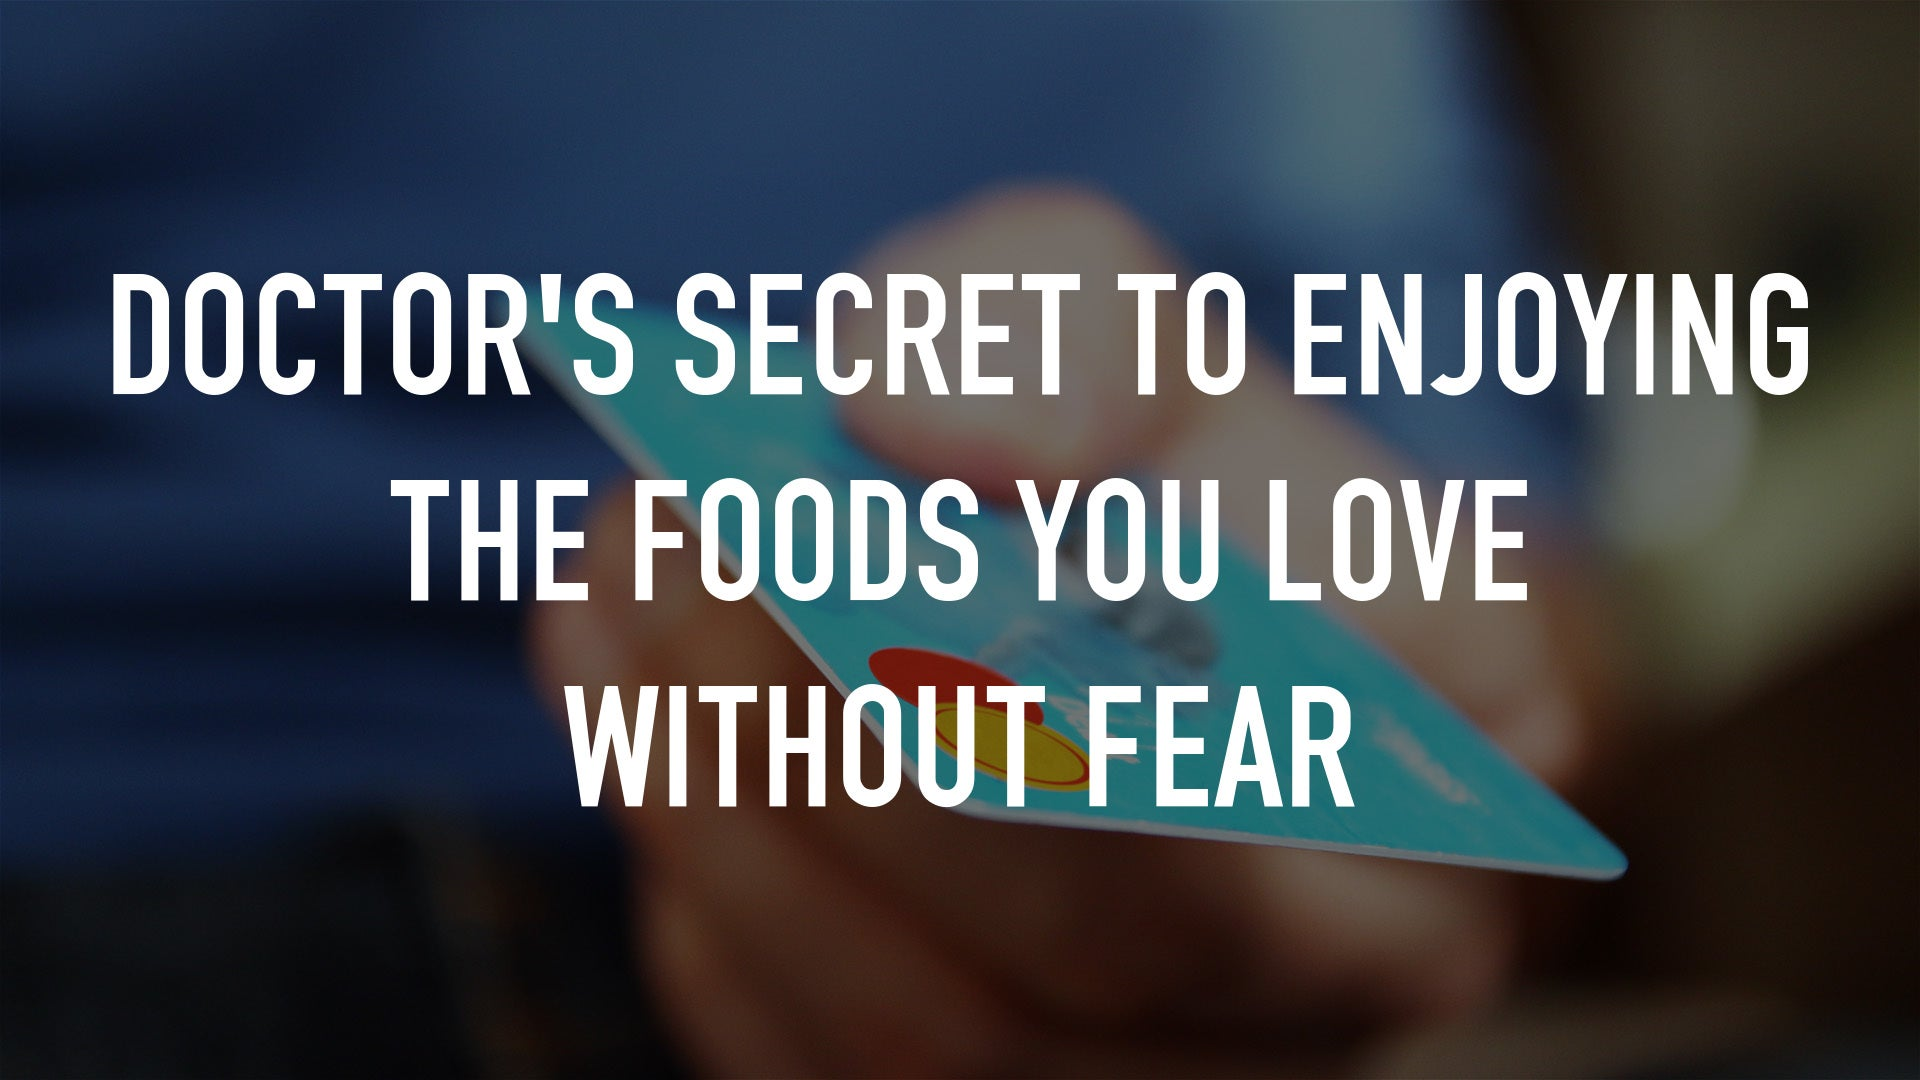 Doctor's Secret to Enjoying The Foods You Love Without Fear